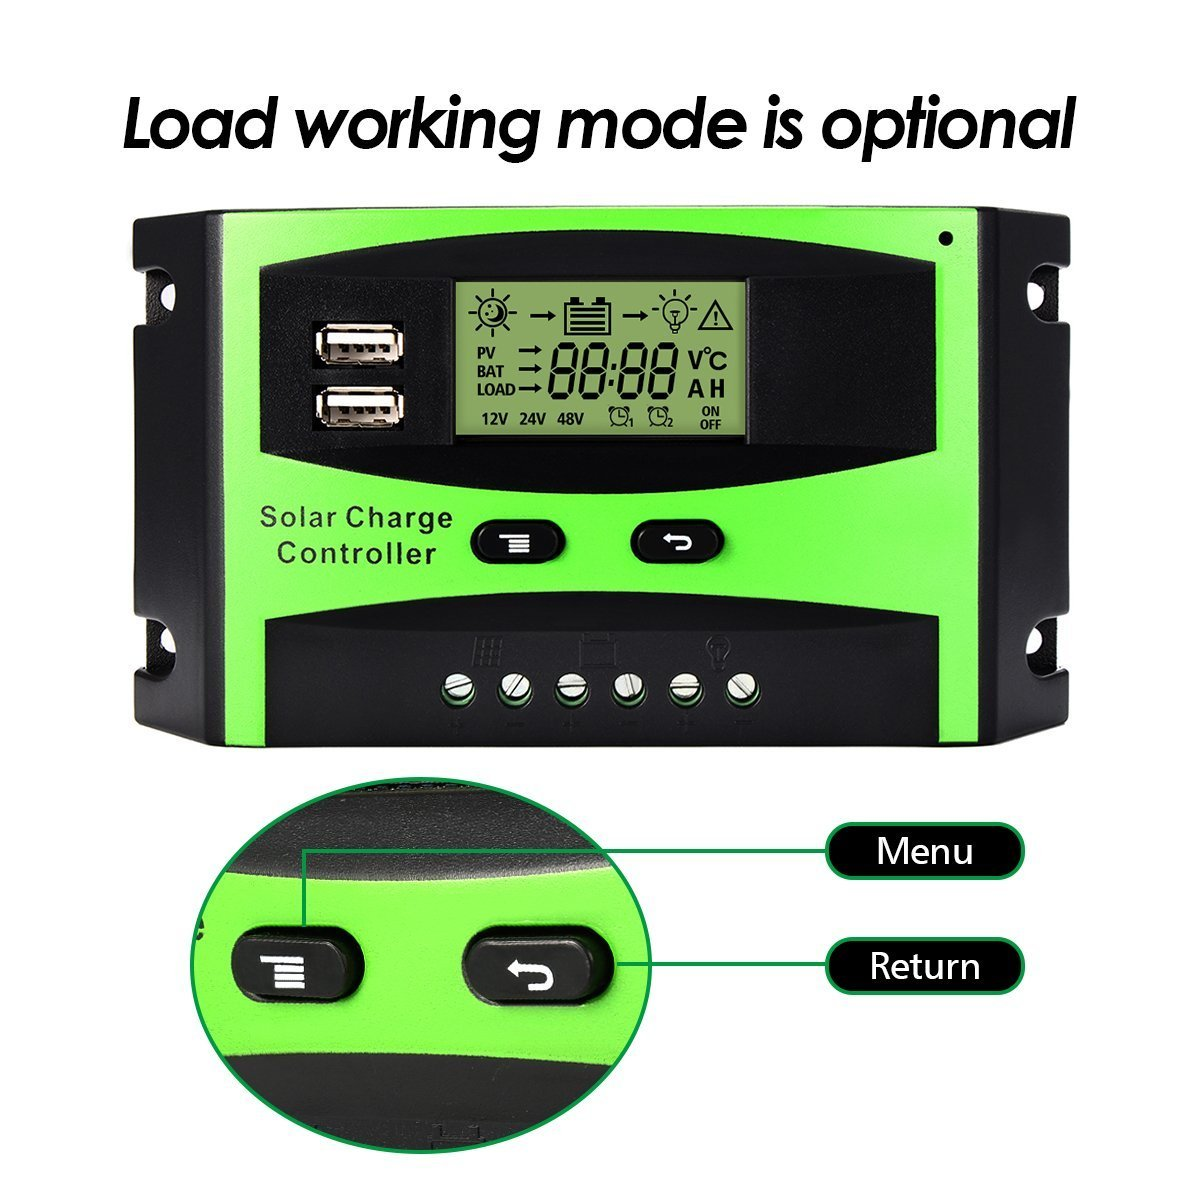 Mohoo Solar Charge Controller 30a 12v 24v Panel Regulator Pwm 20a Street Light Autoswitch Lcd Display With Usb For Home Industry Commercial Boat